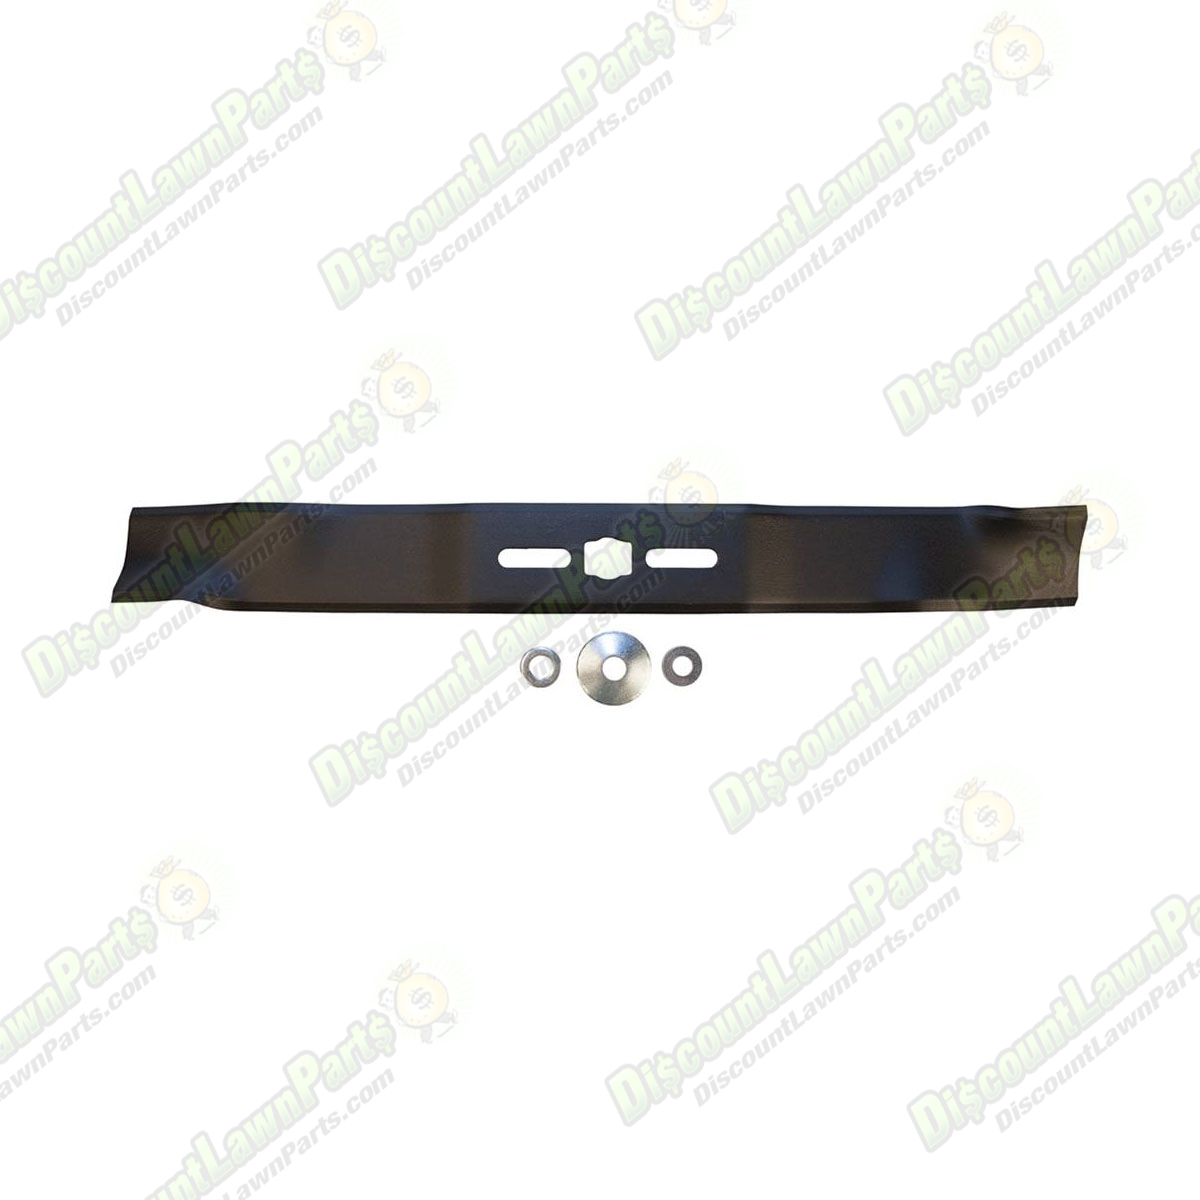 Universal 3-in-1 Blade / 22 inch L, Bow Tie Center Hole